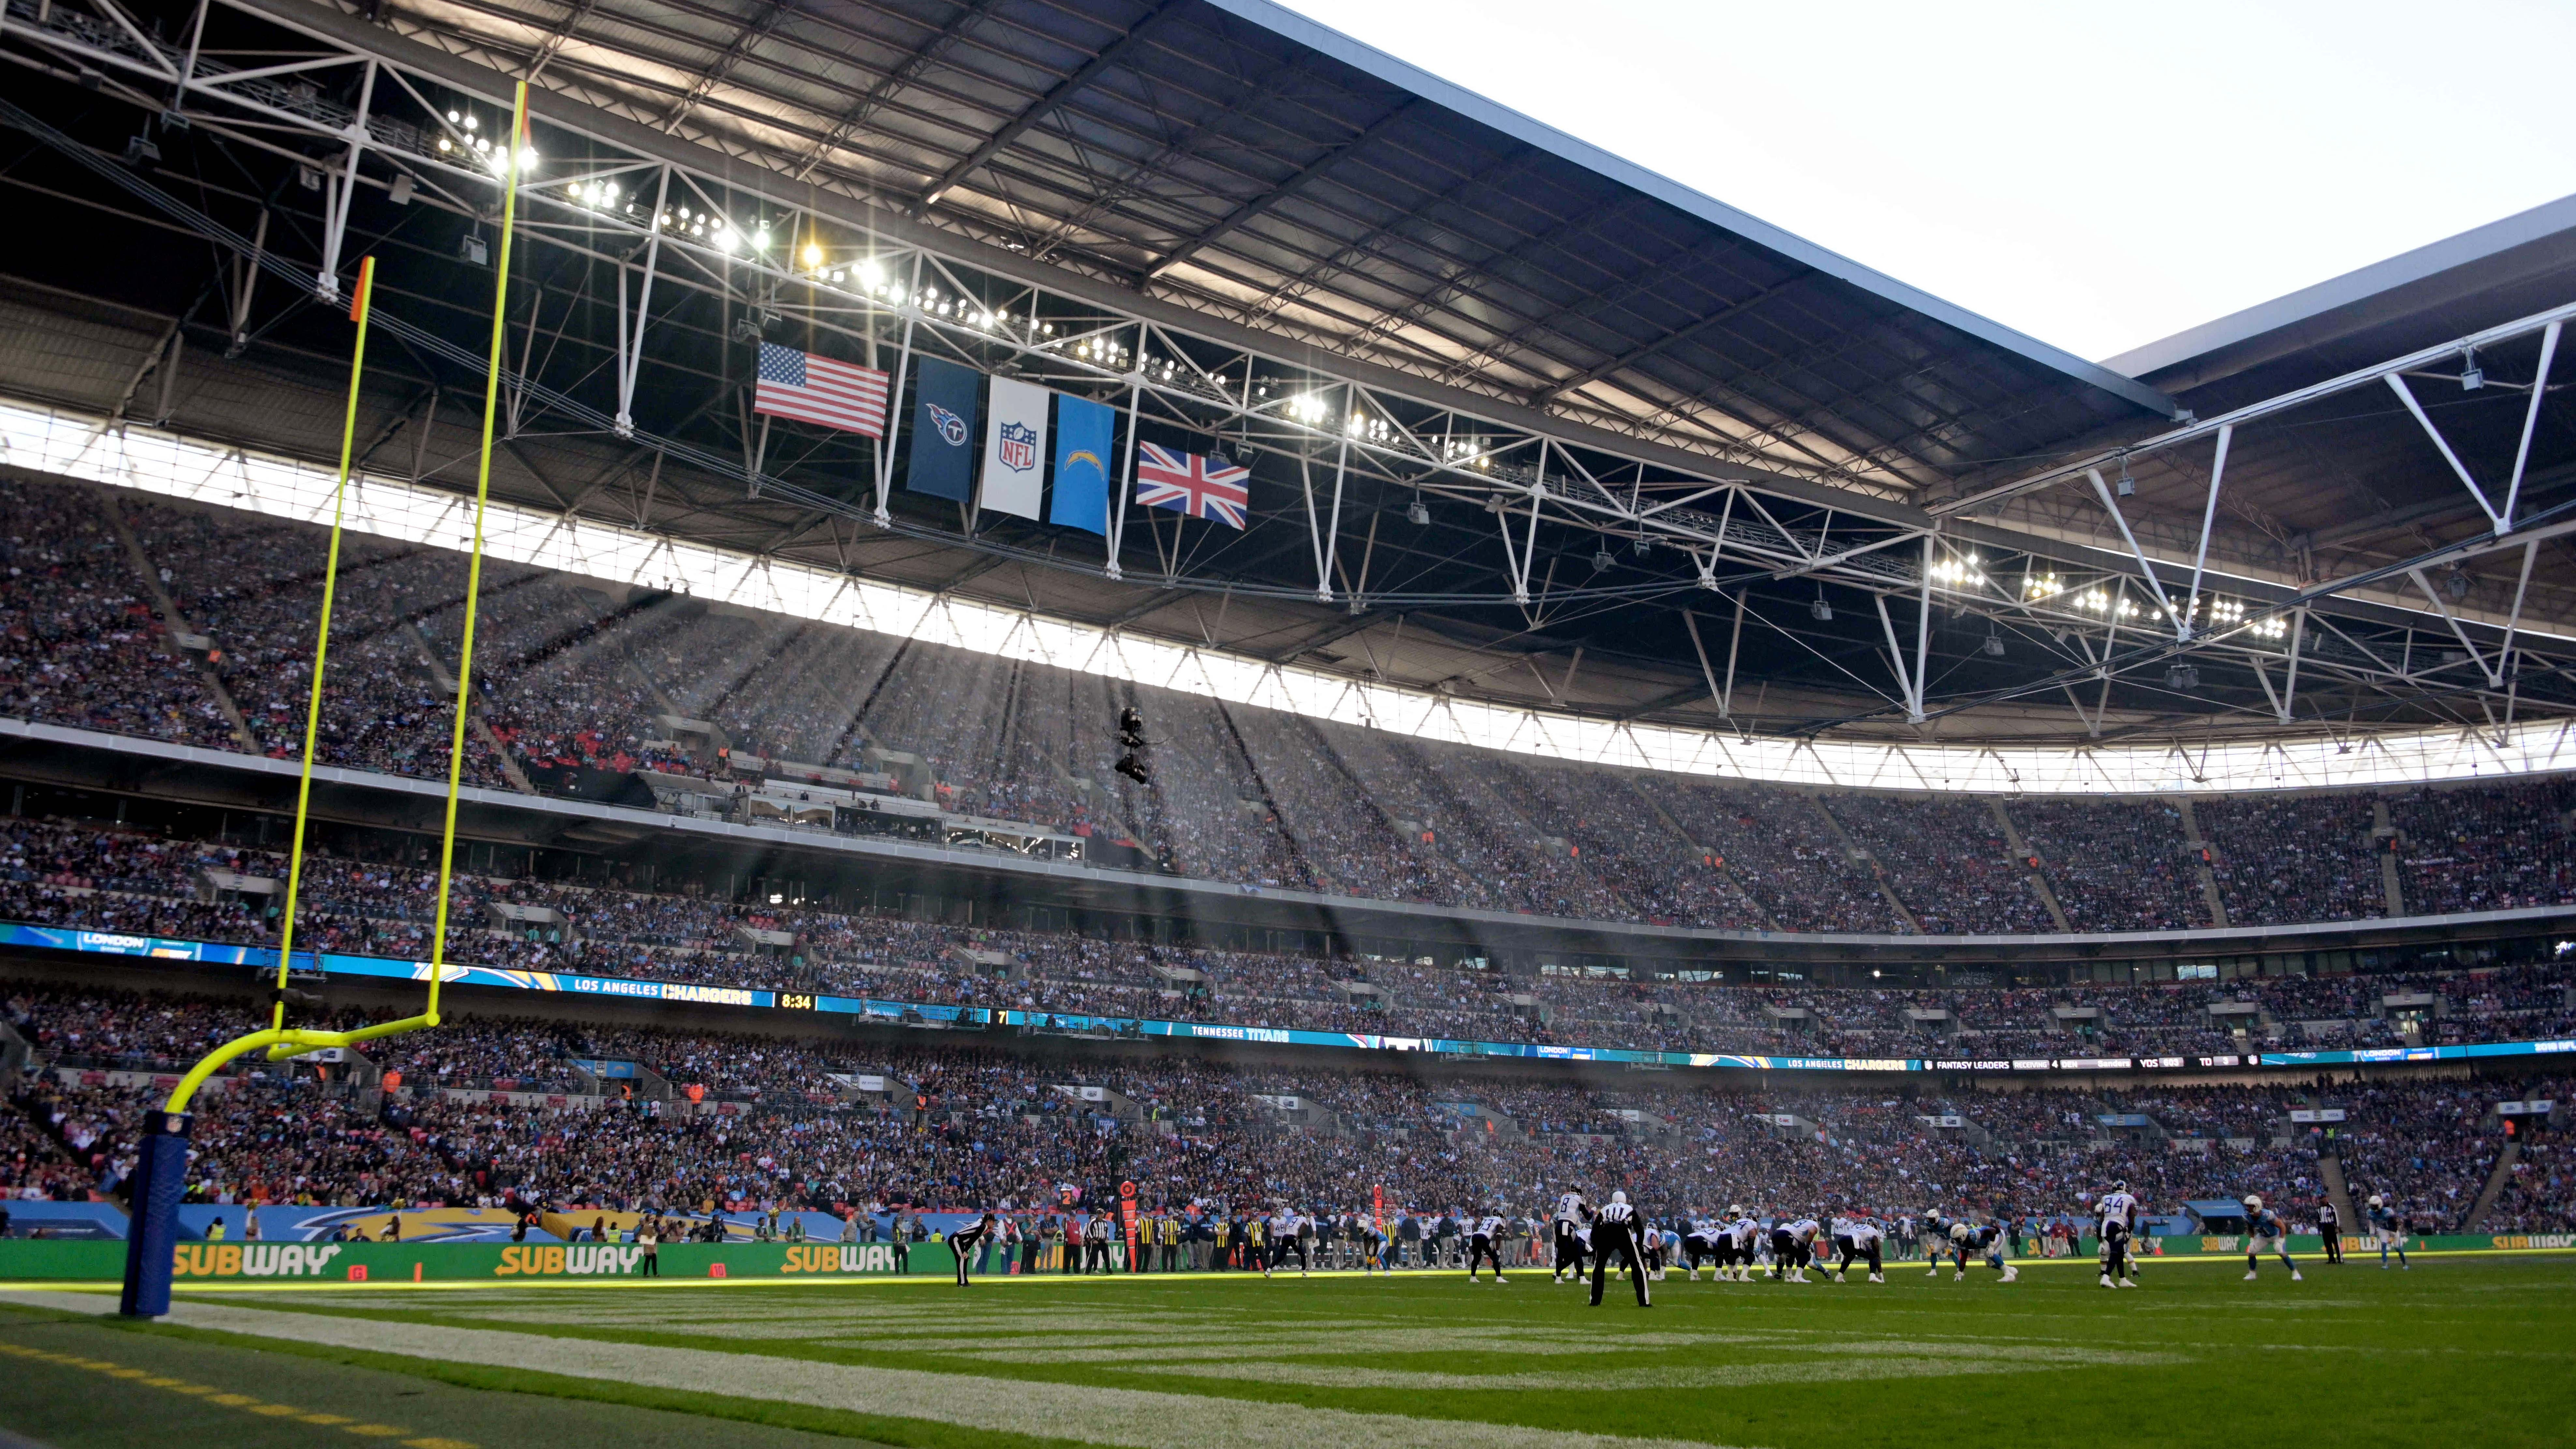 The Titans and Los Angeles Chargers in action Oct 21, 2018, at Wembley Stadium.